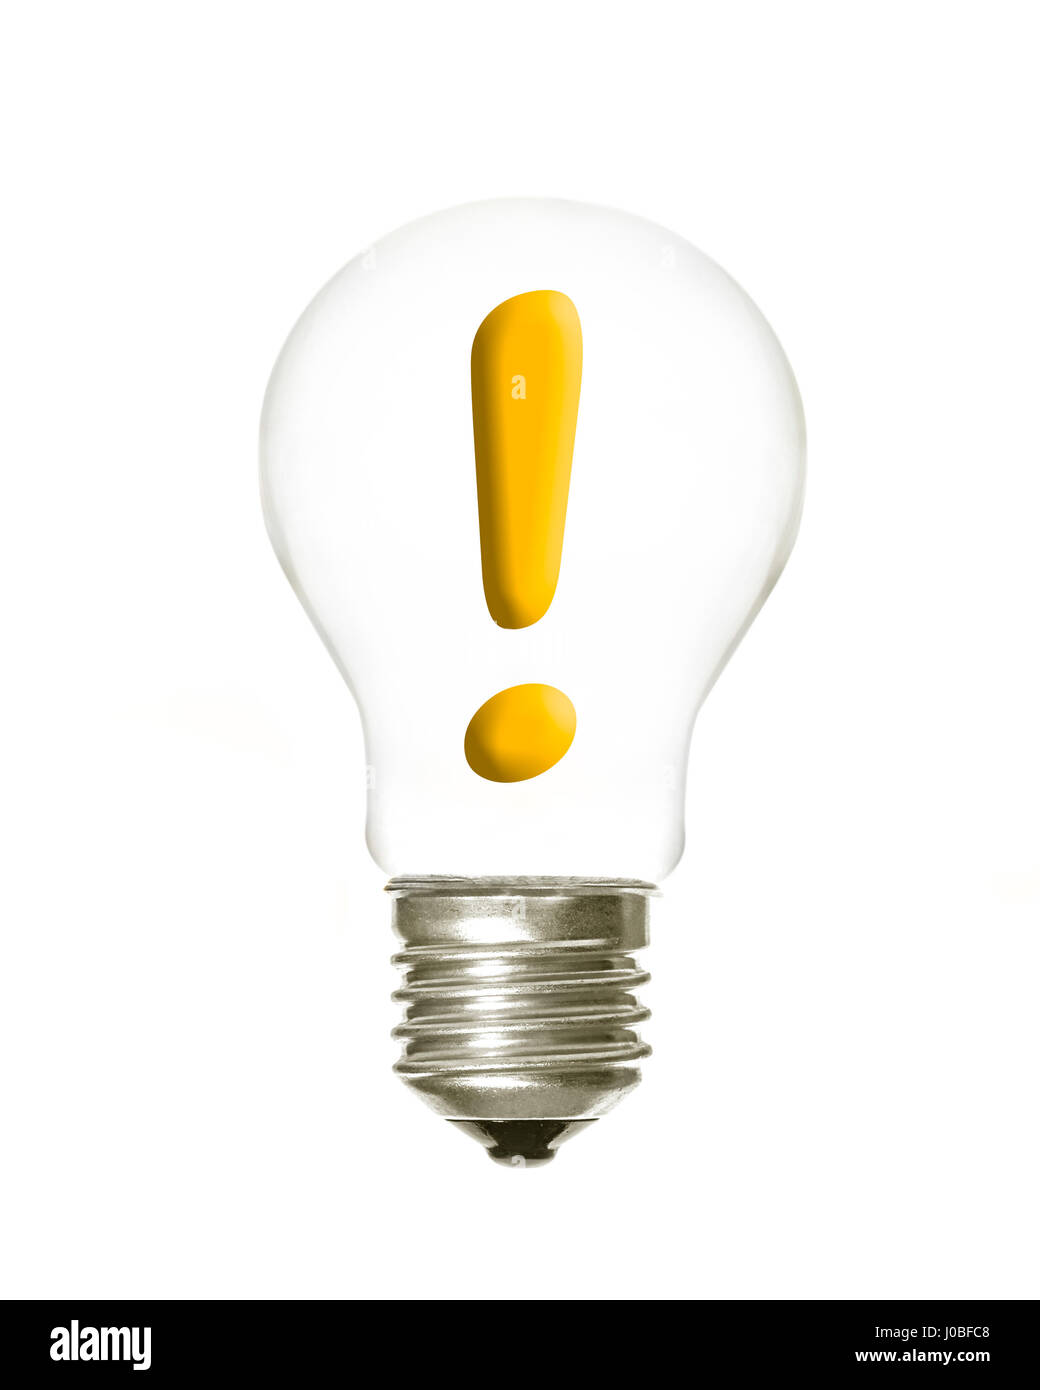 a light bulb with the exclamation symbol inside on a white background - Stock Image